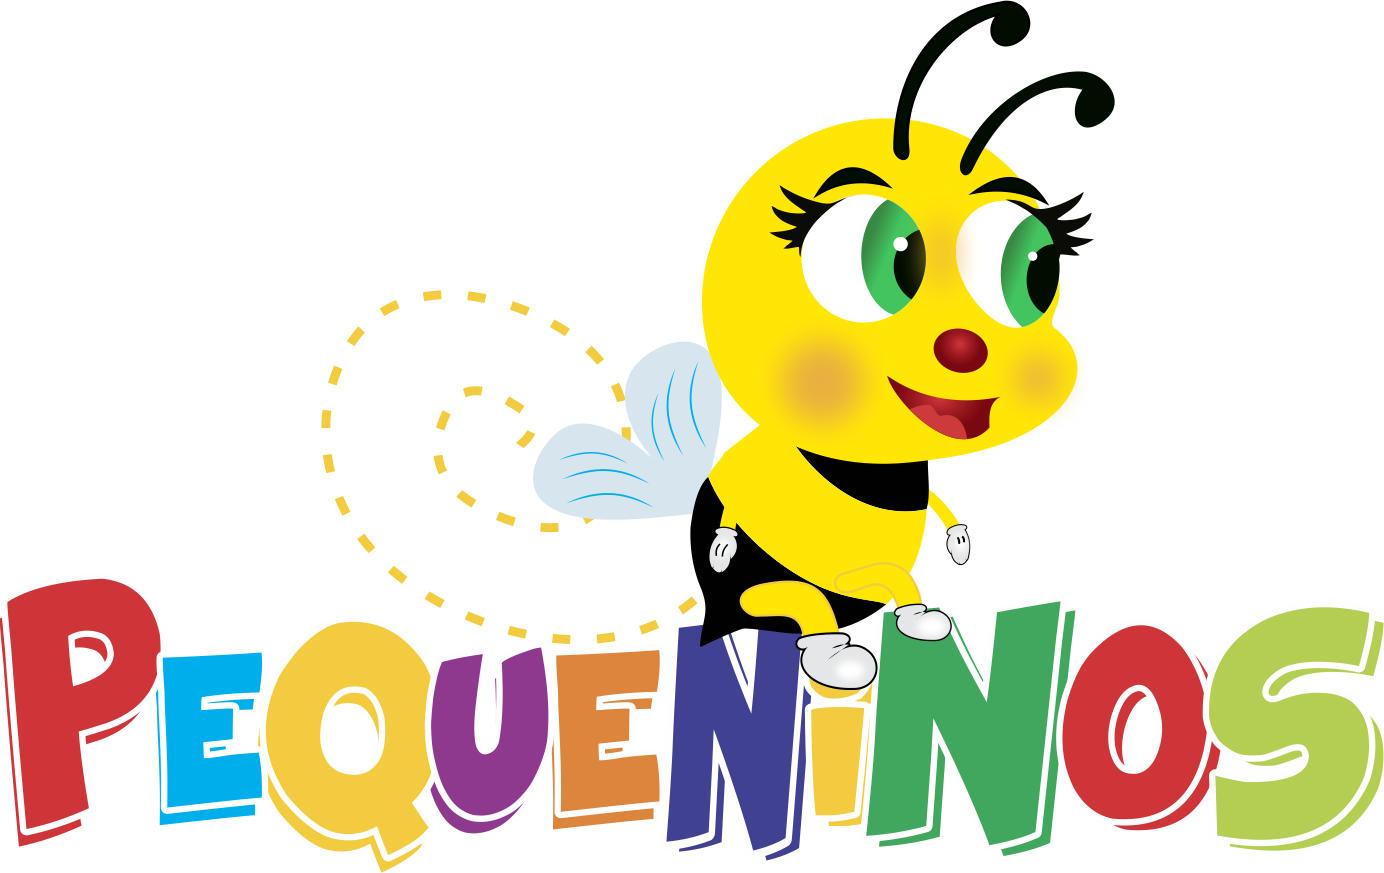 Pequeninos Boutique Infantil